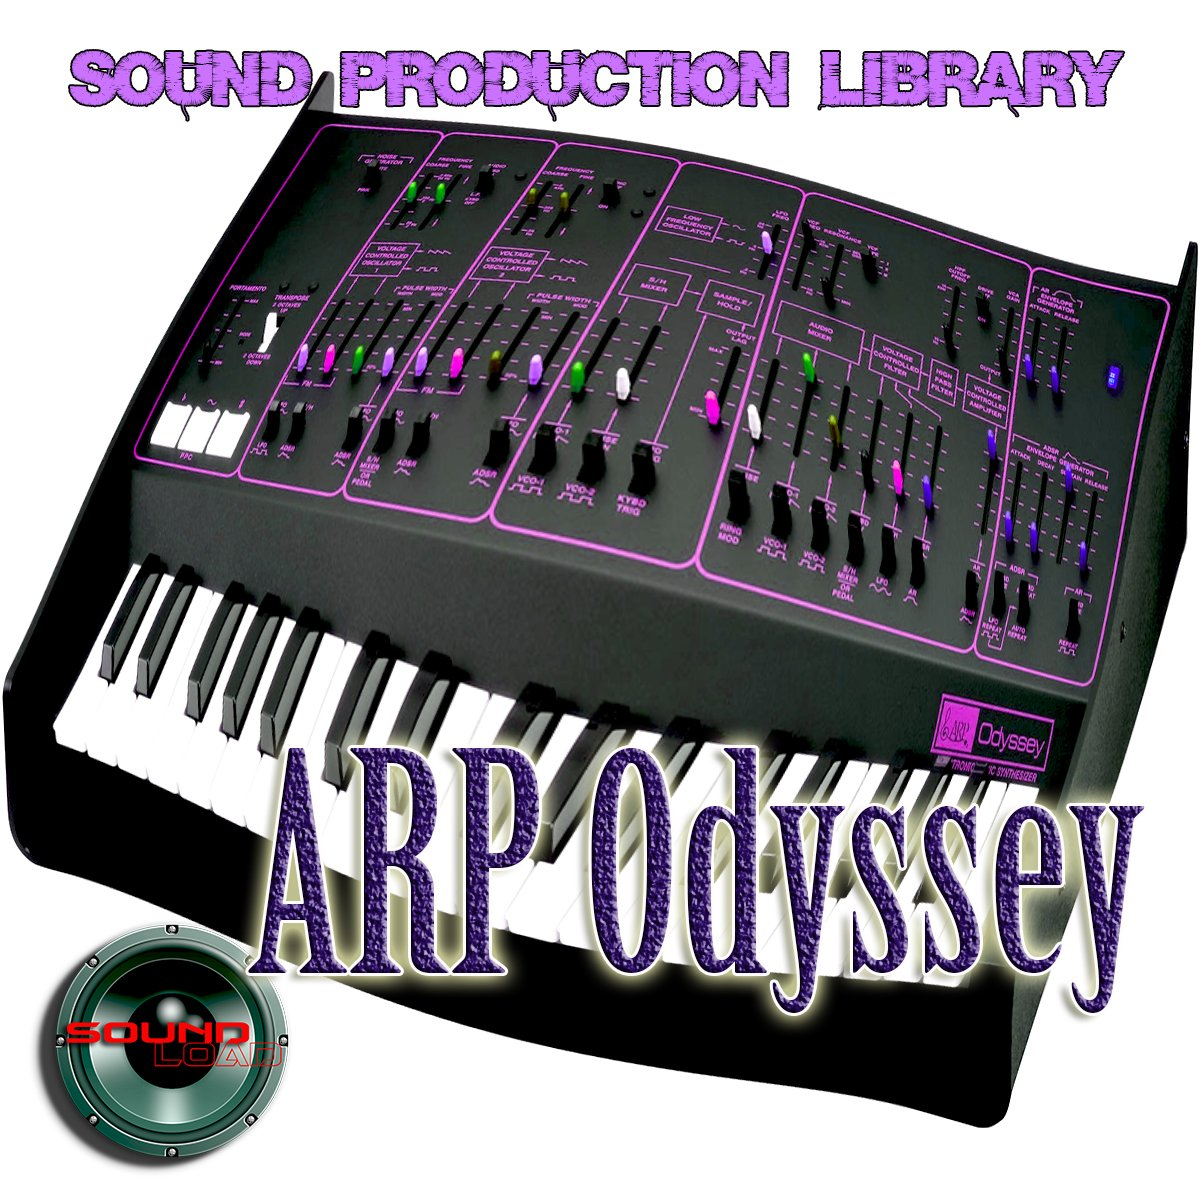 ARP SOLINA Strings Ensemble - Large Original 24bit Multi-Layer WAVe Samples Studio Library 1.7GB; FREE USA Continental Shipping on DVD or download by SoundLoad (Image #3)